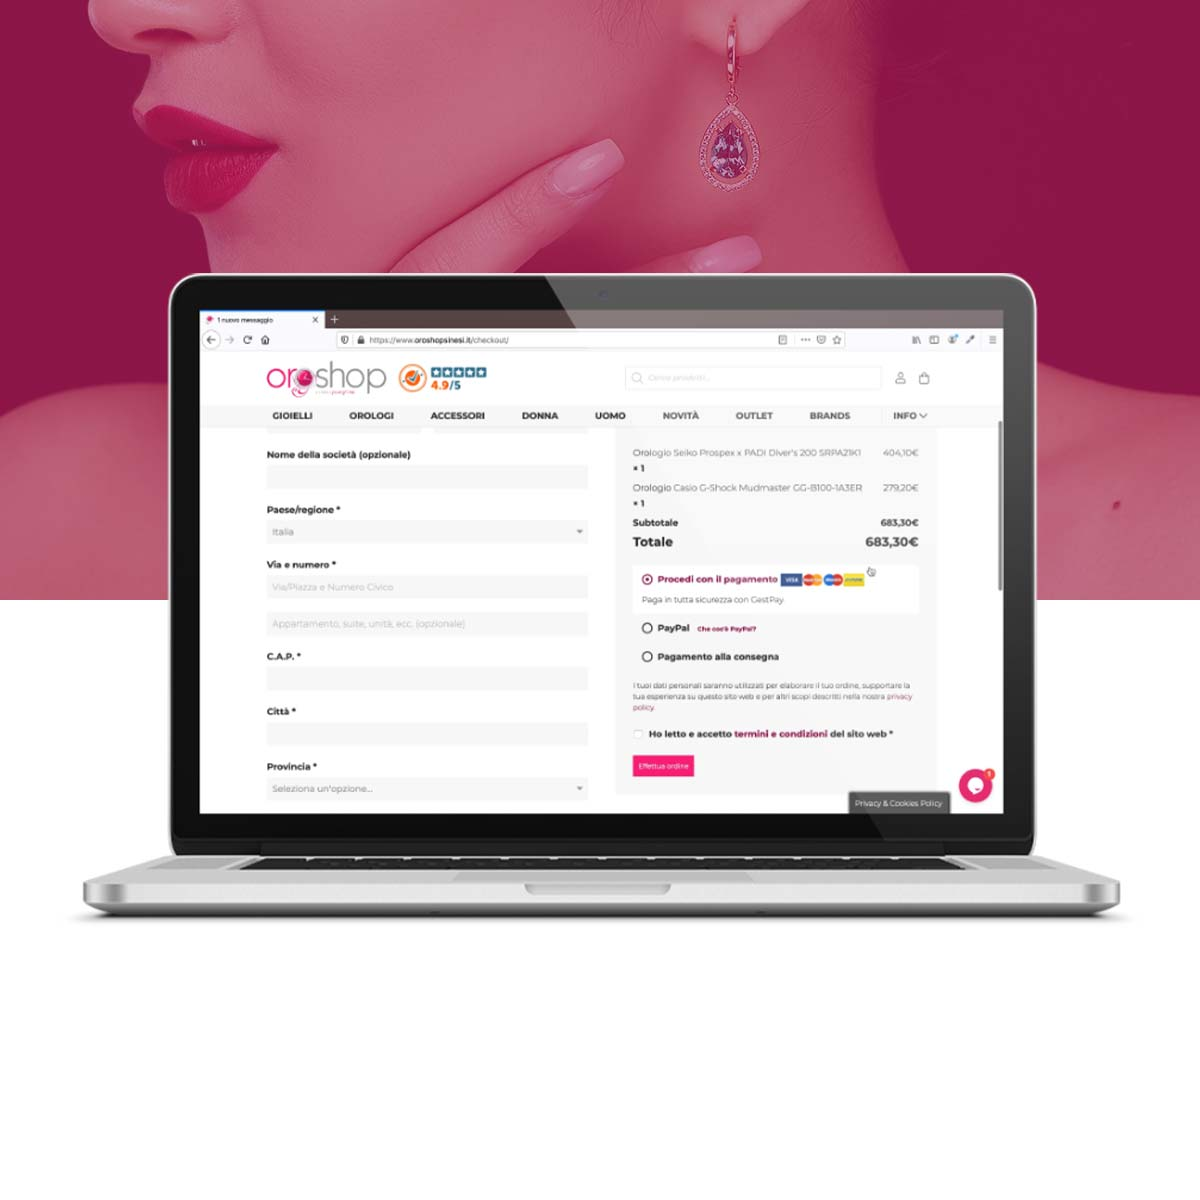 Oroshop Sinesi - Pagina check out ecommerce